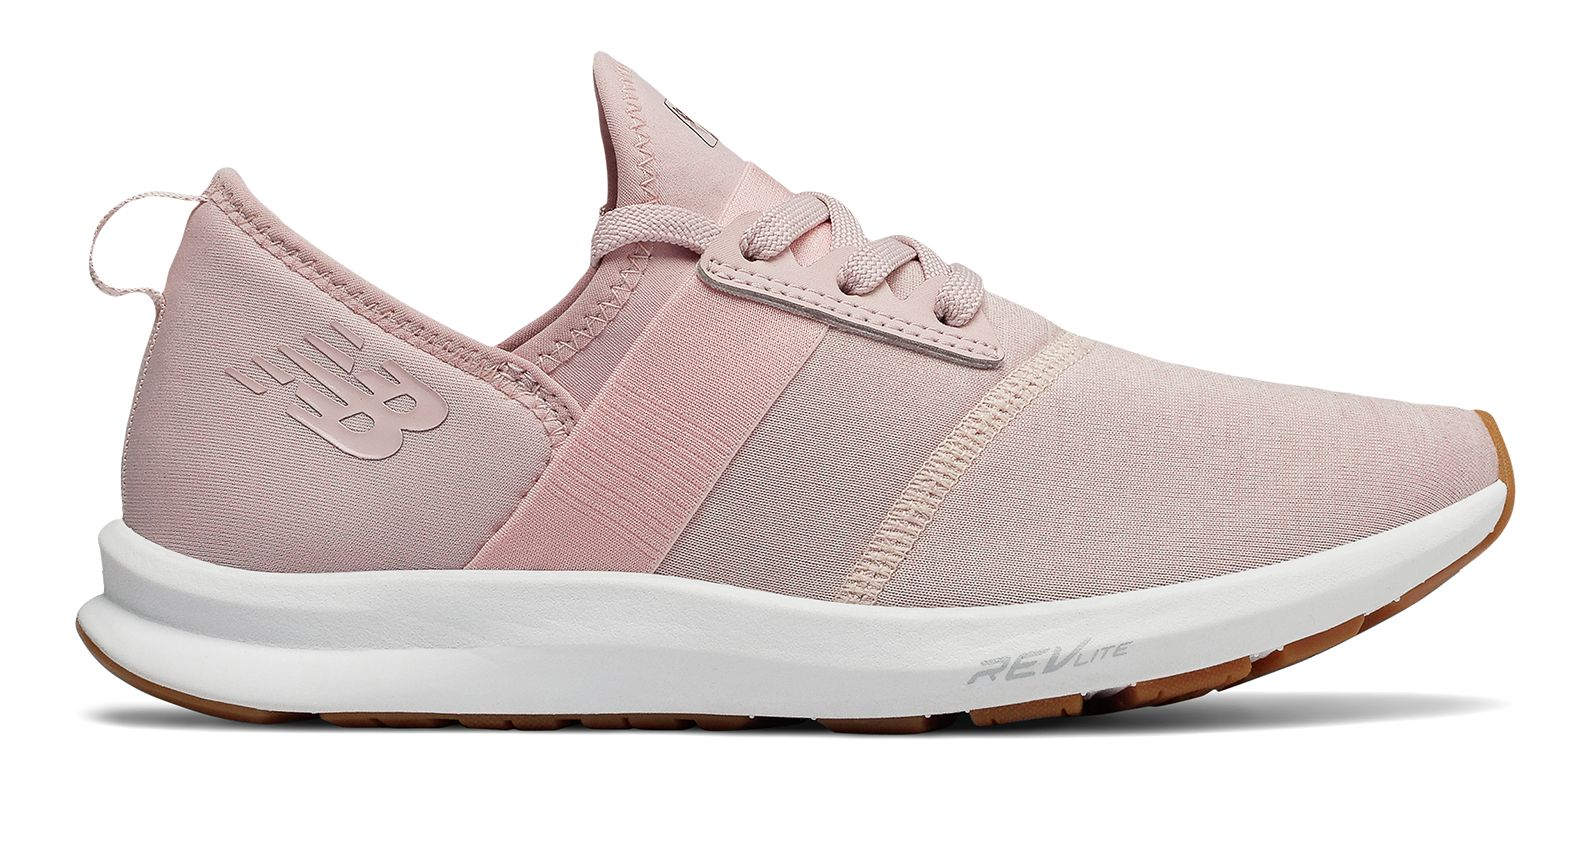 Balance Nergize With Shoes Pink Fuelcore About Details New Women's White BxedoC